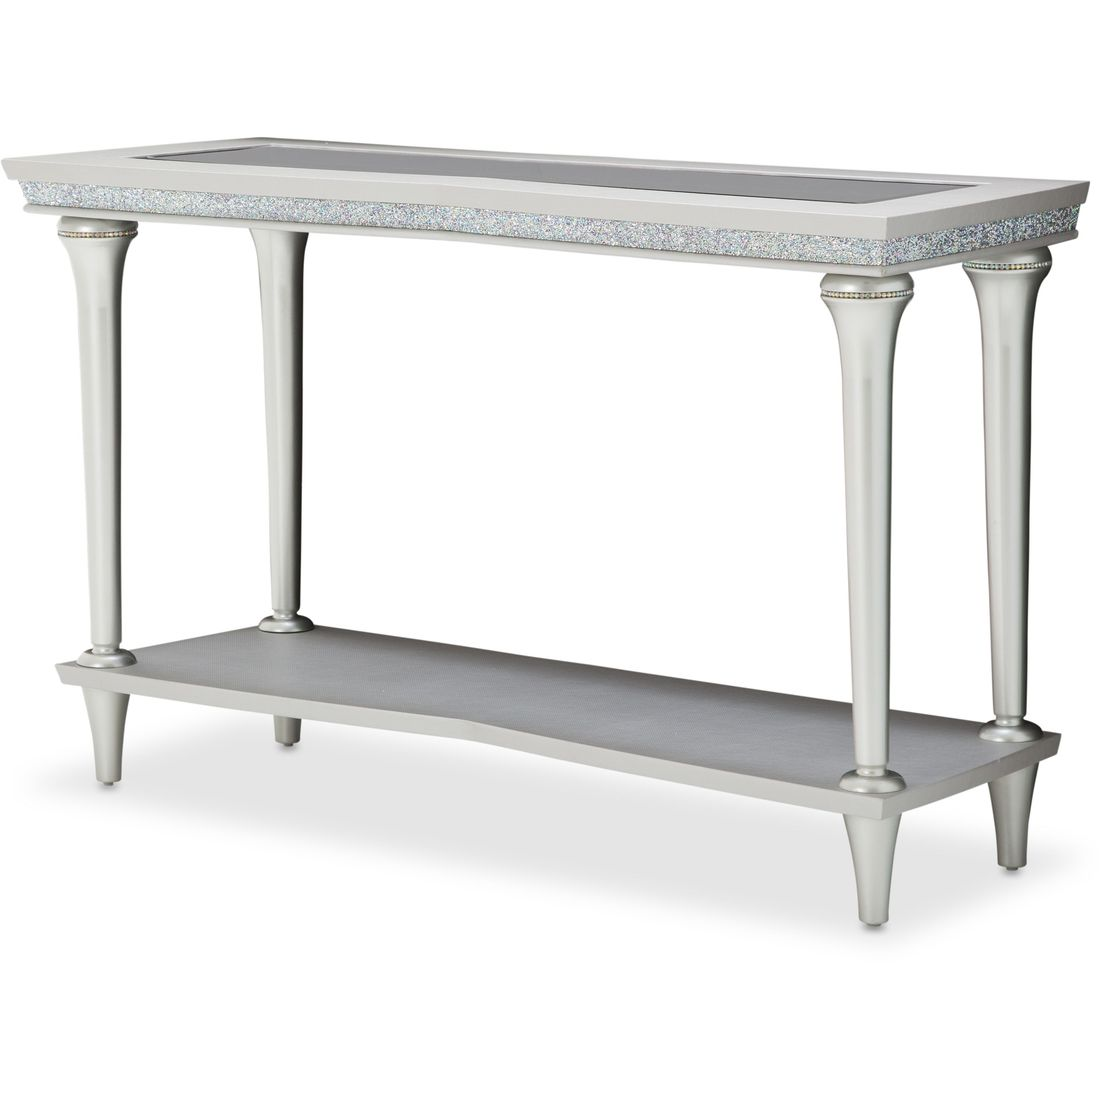 AICO Michael Amini Melrose Plaza Console Table Qty: $669.00